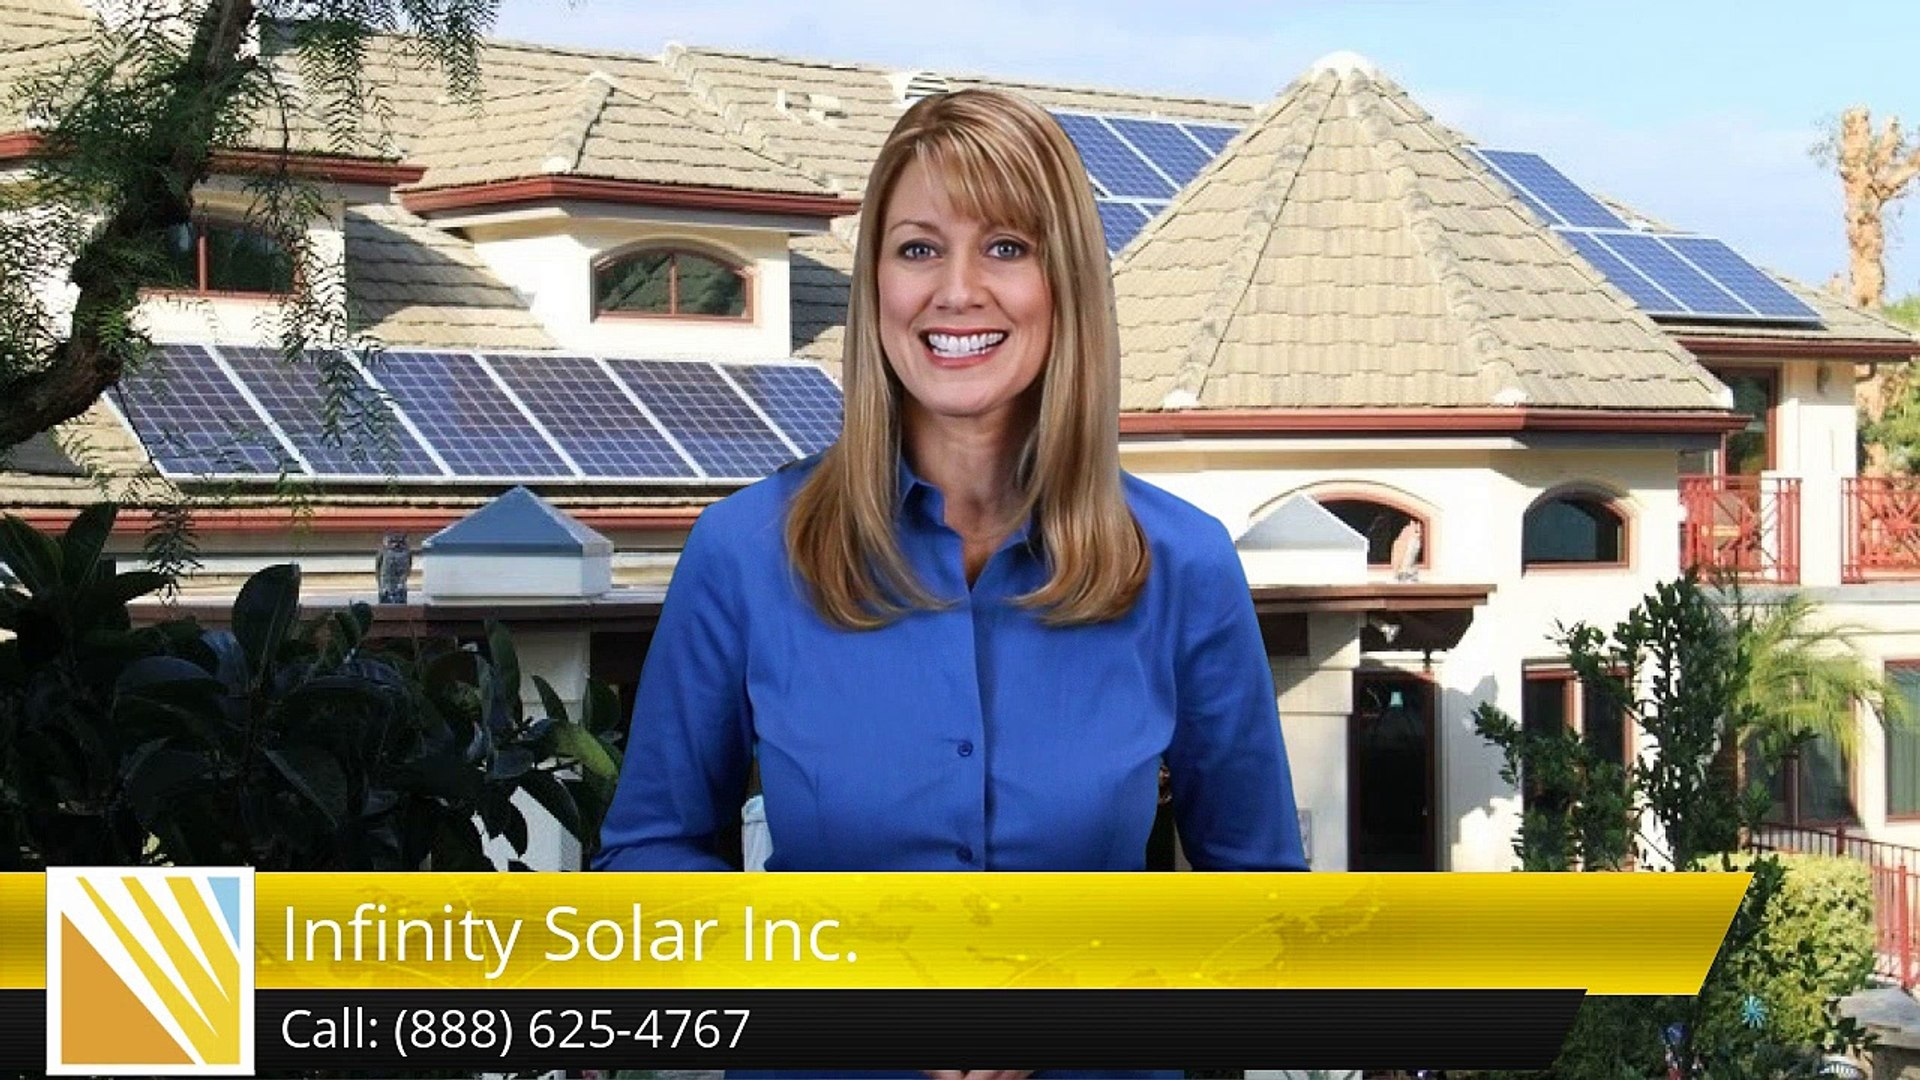 Infinity Solar Inc. Orange         Wonderful         Five Star Review by Peter D.